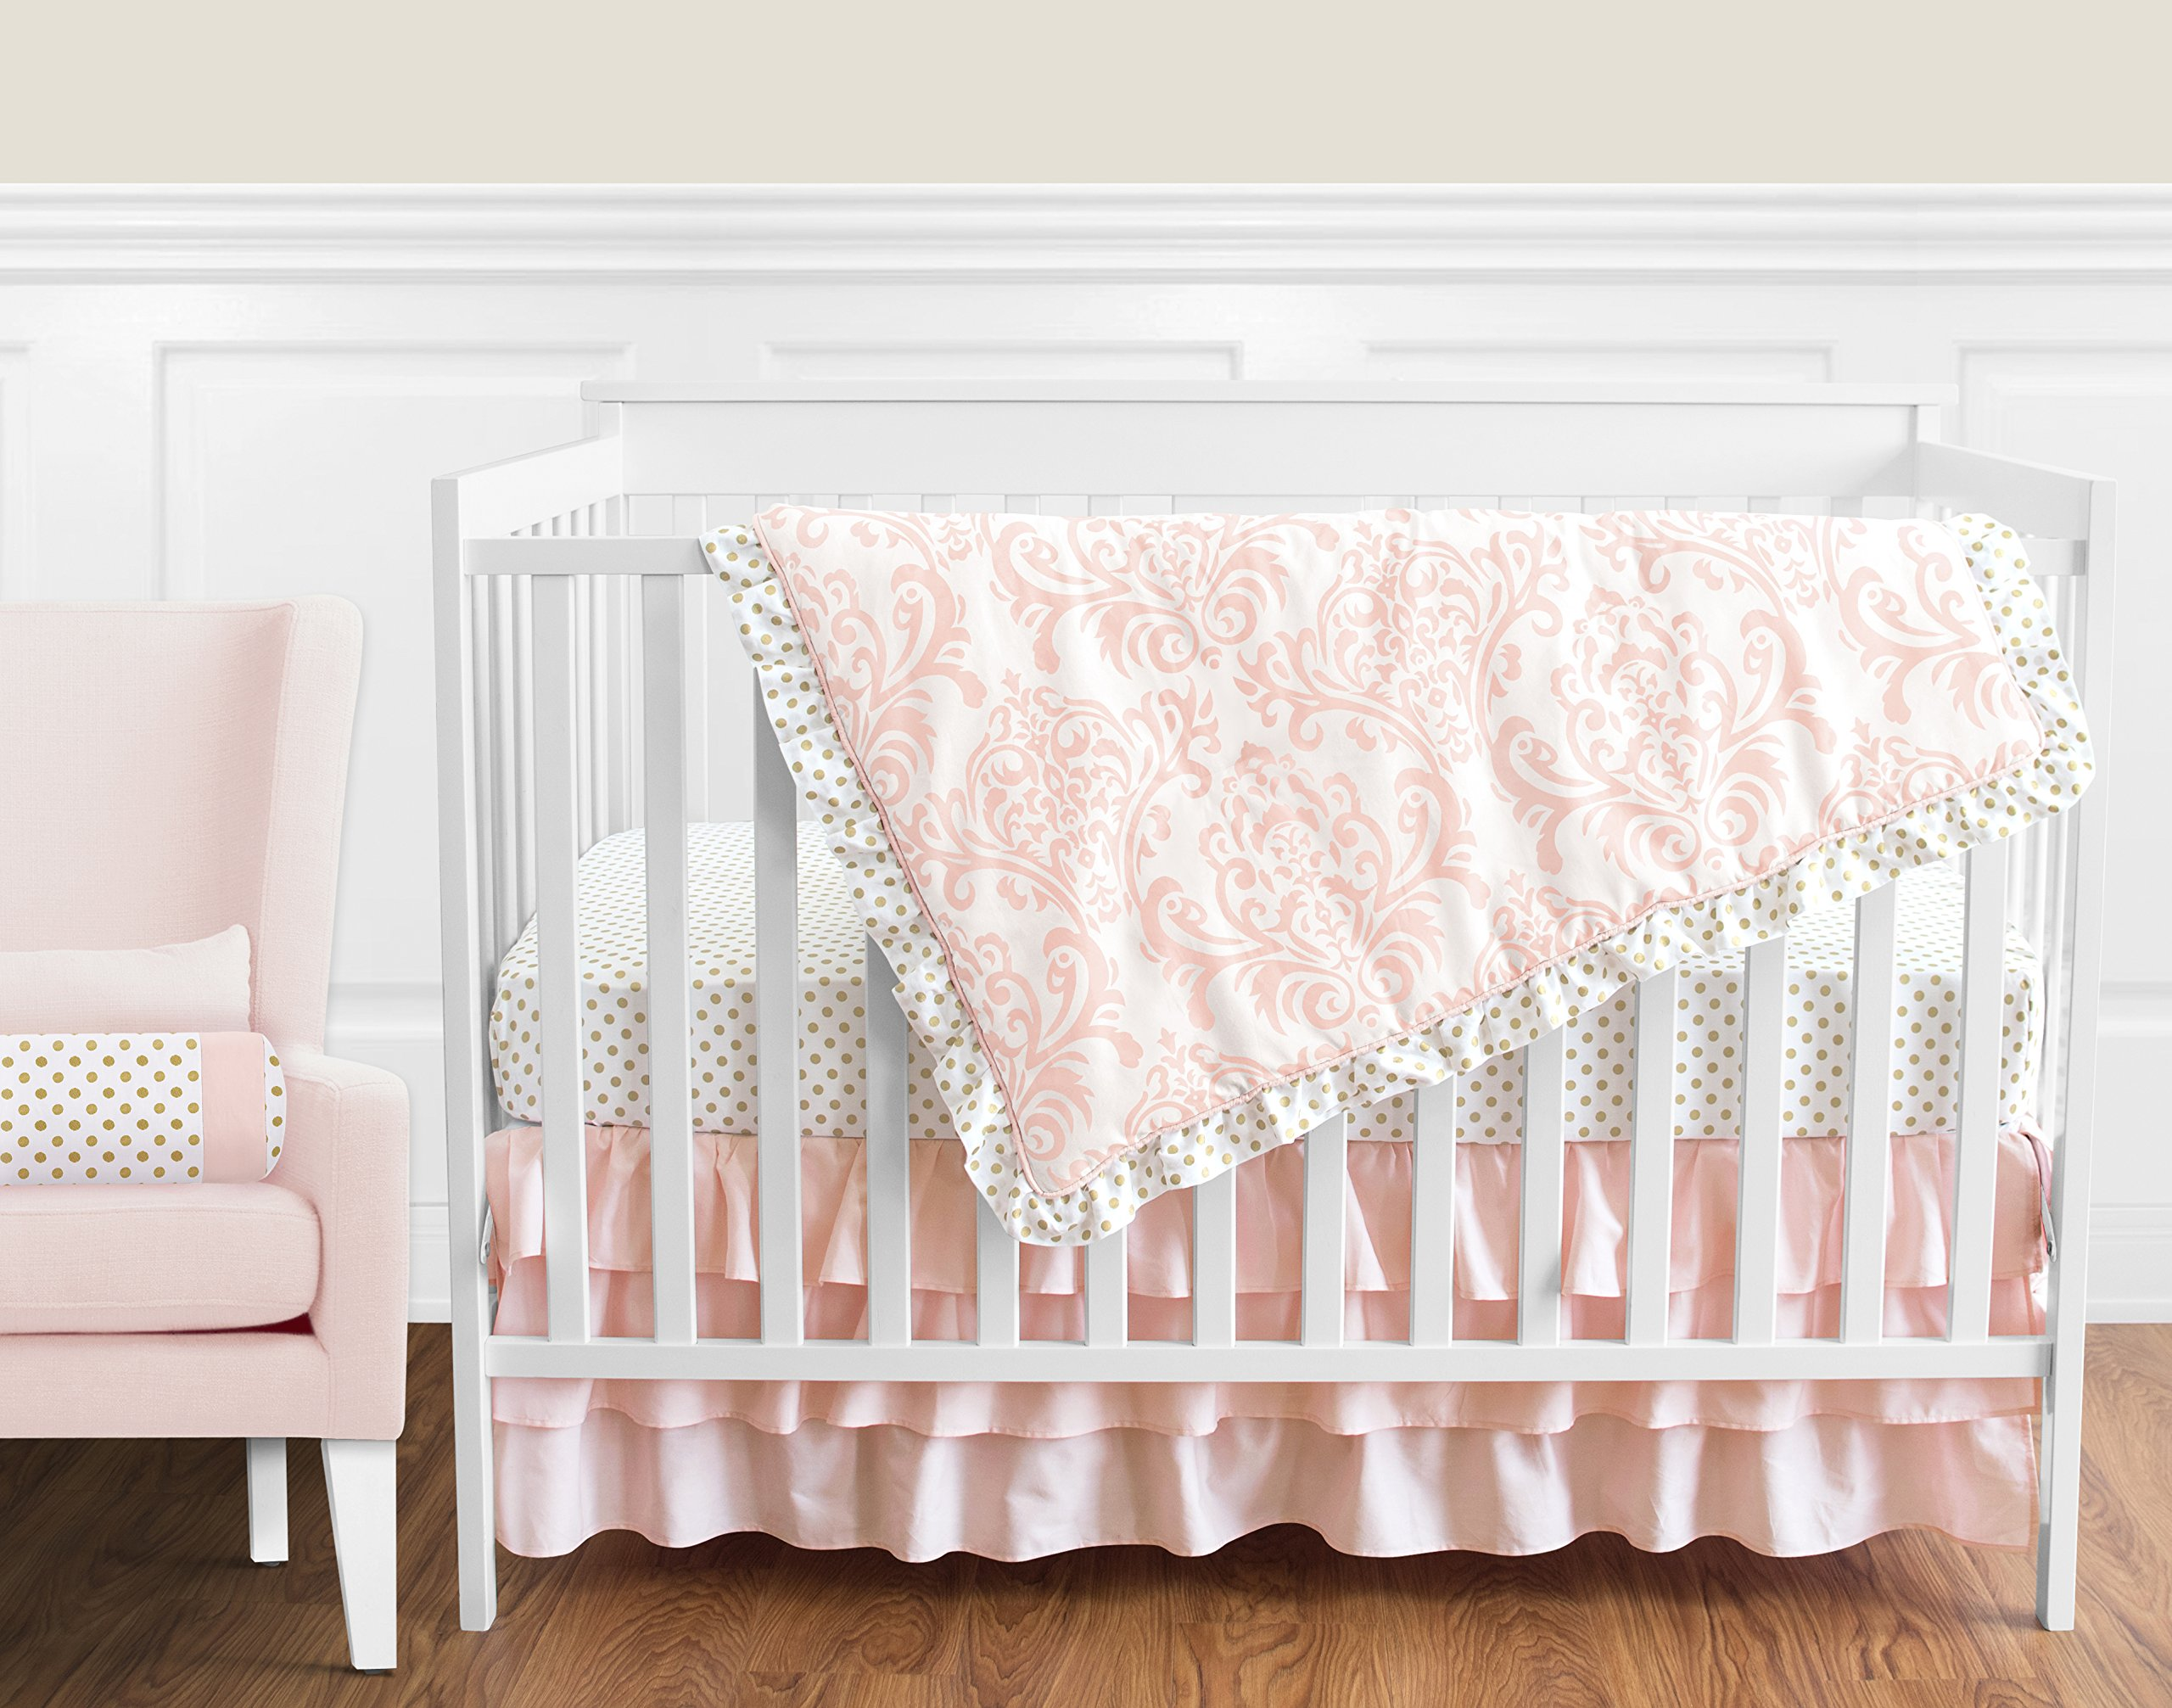 Blush Pink White Damask and Gold Polka Dot Amelia Girl Baby Bedding 4 Piece Crib Set Without Bumper by Sweet Jojo Designs